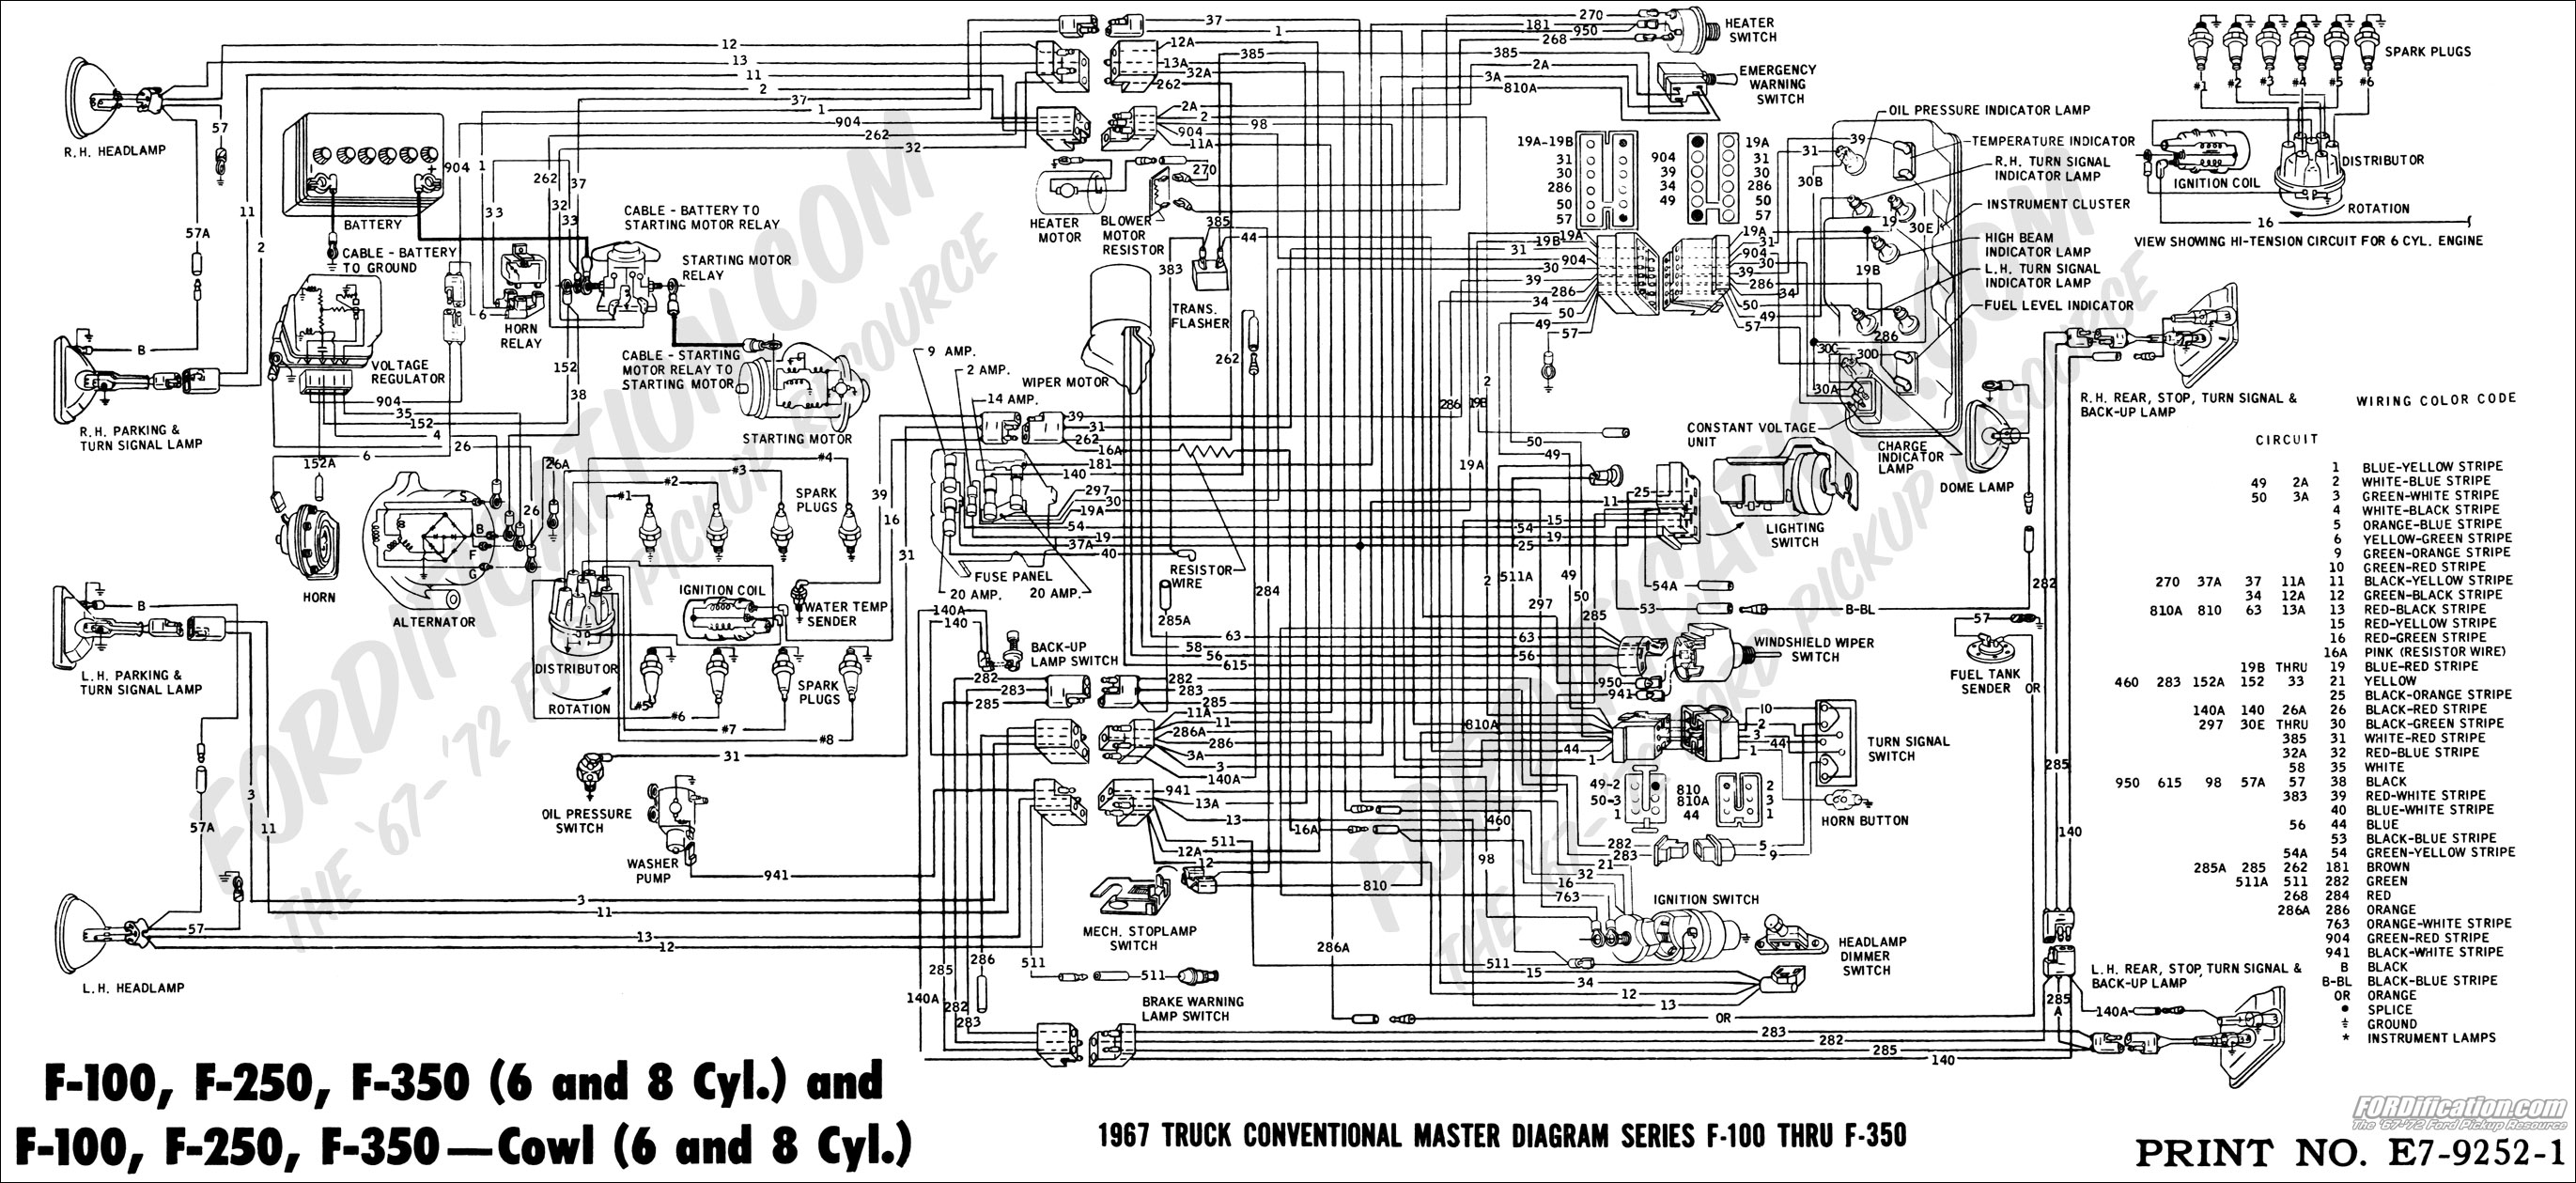 1991 ford f150 wiring diagram 1995 f150 fuel pump diagram \u2022 wiring 1993 f150 wiring diagram at 1993 Ford F 150 Wiring Diagram